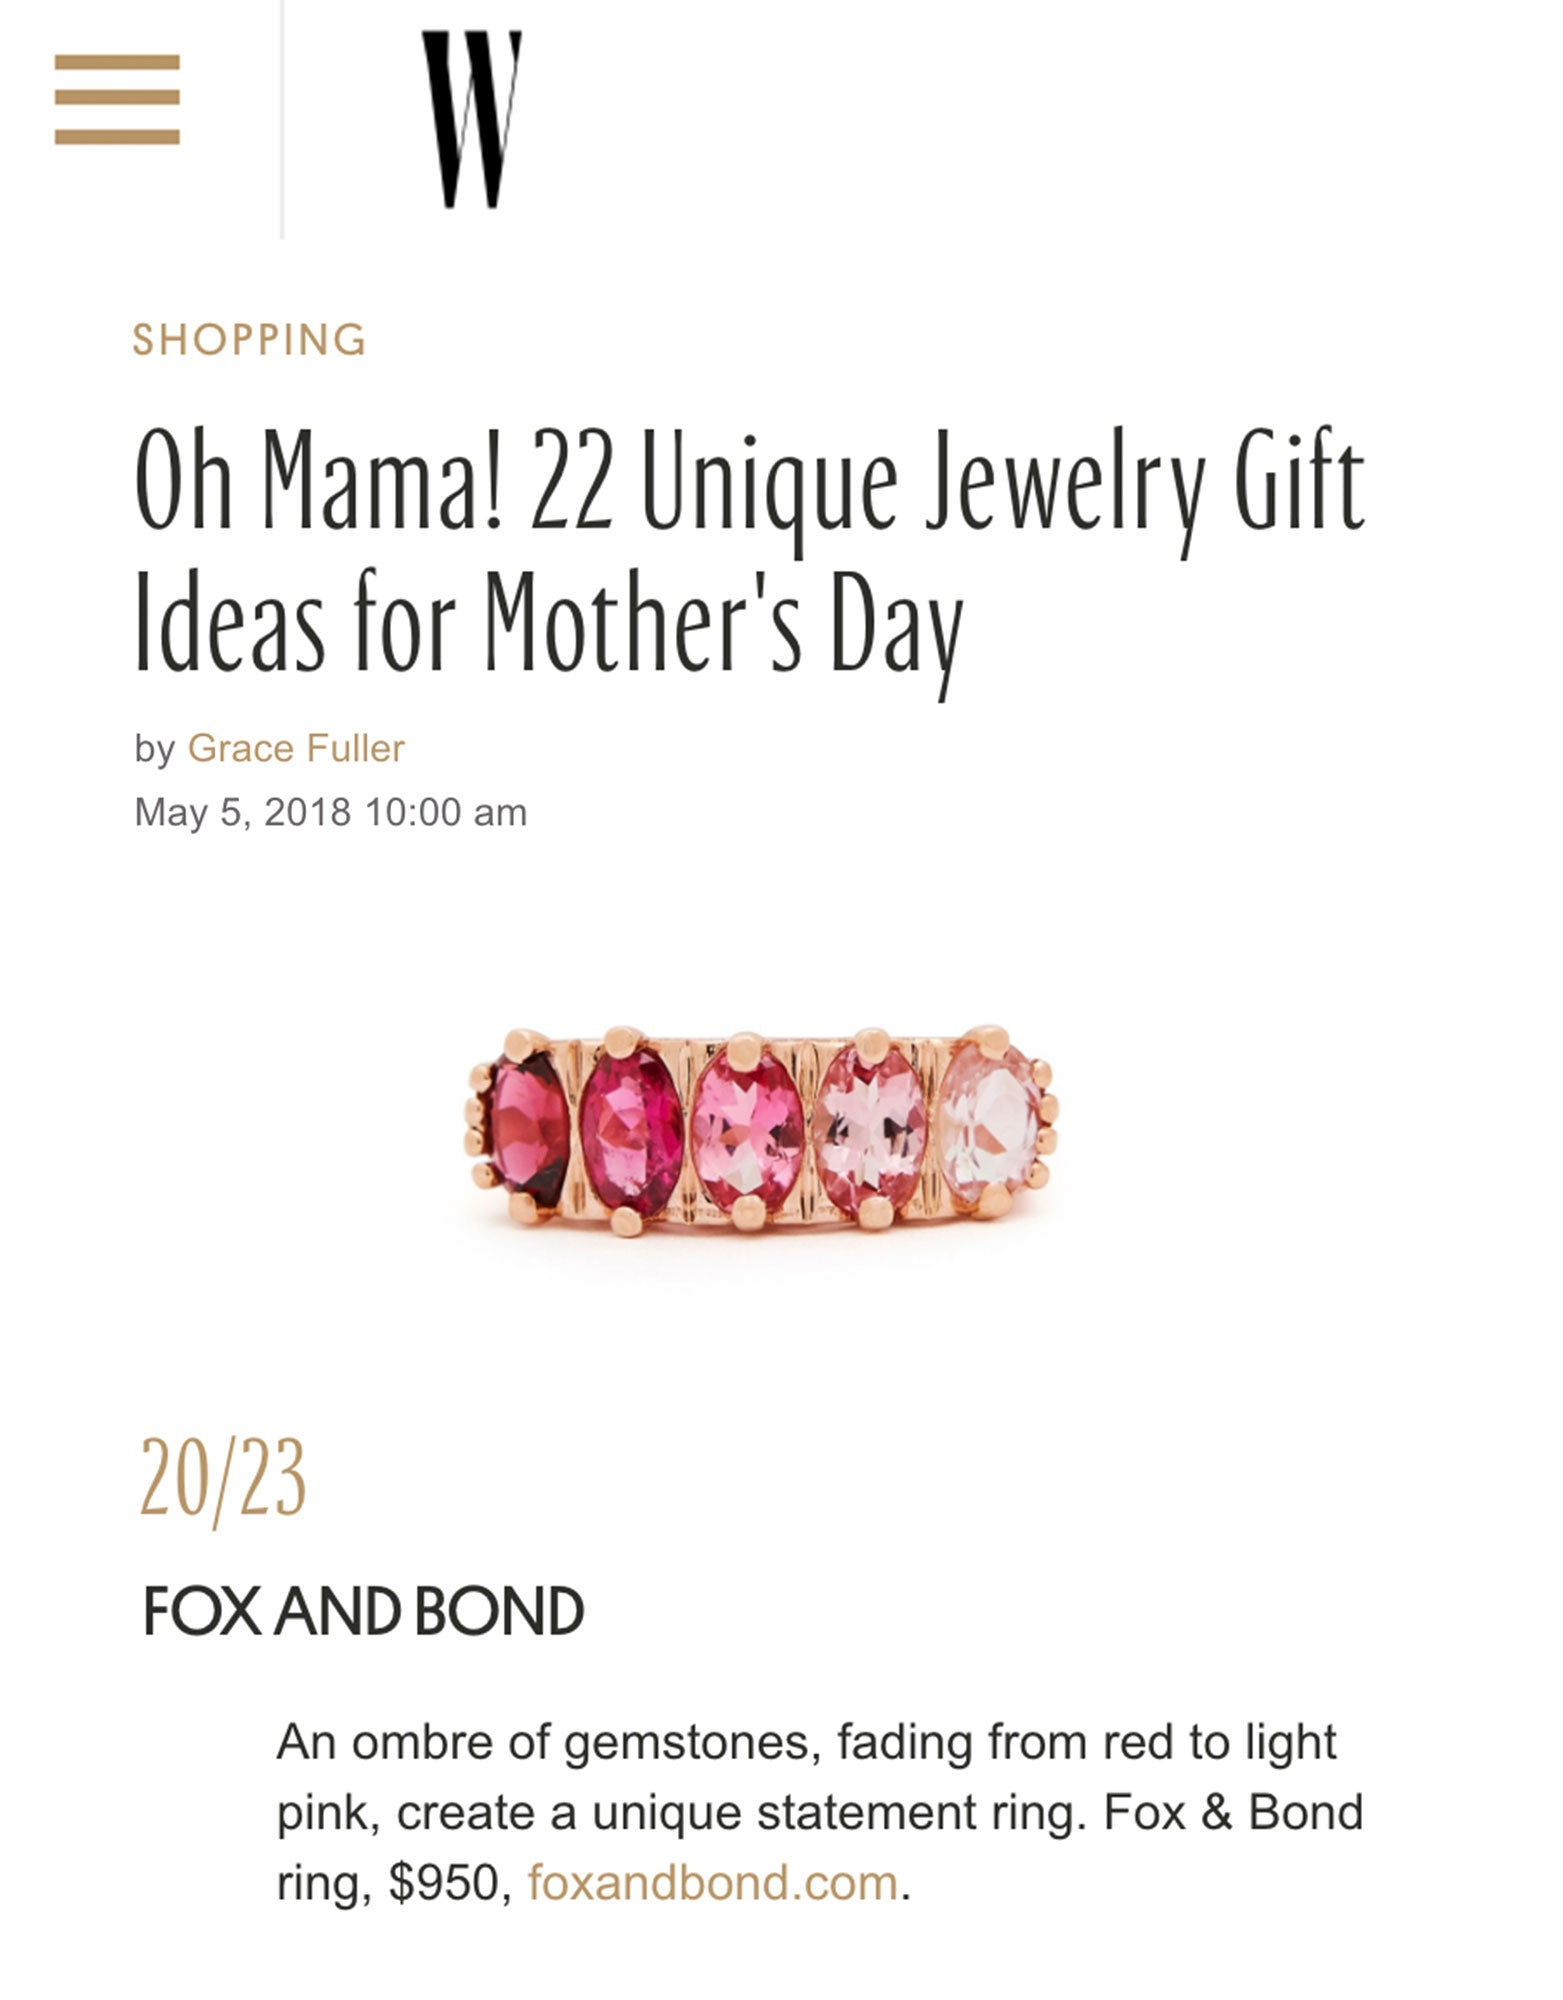 WMagazine.com: 22 Unique Jewelry Gift Ideas for Mother's Day